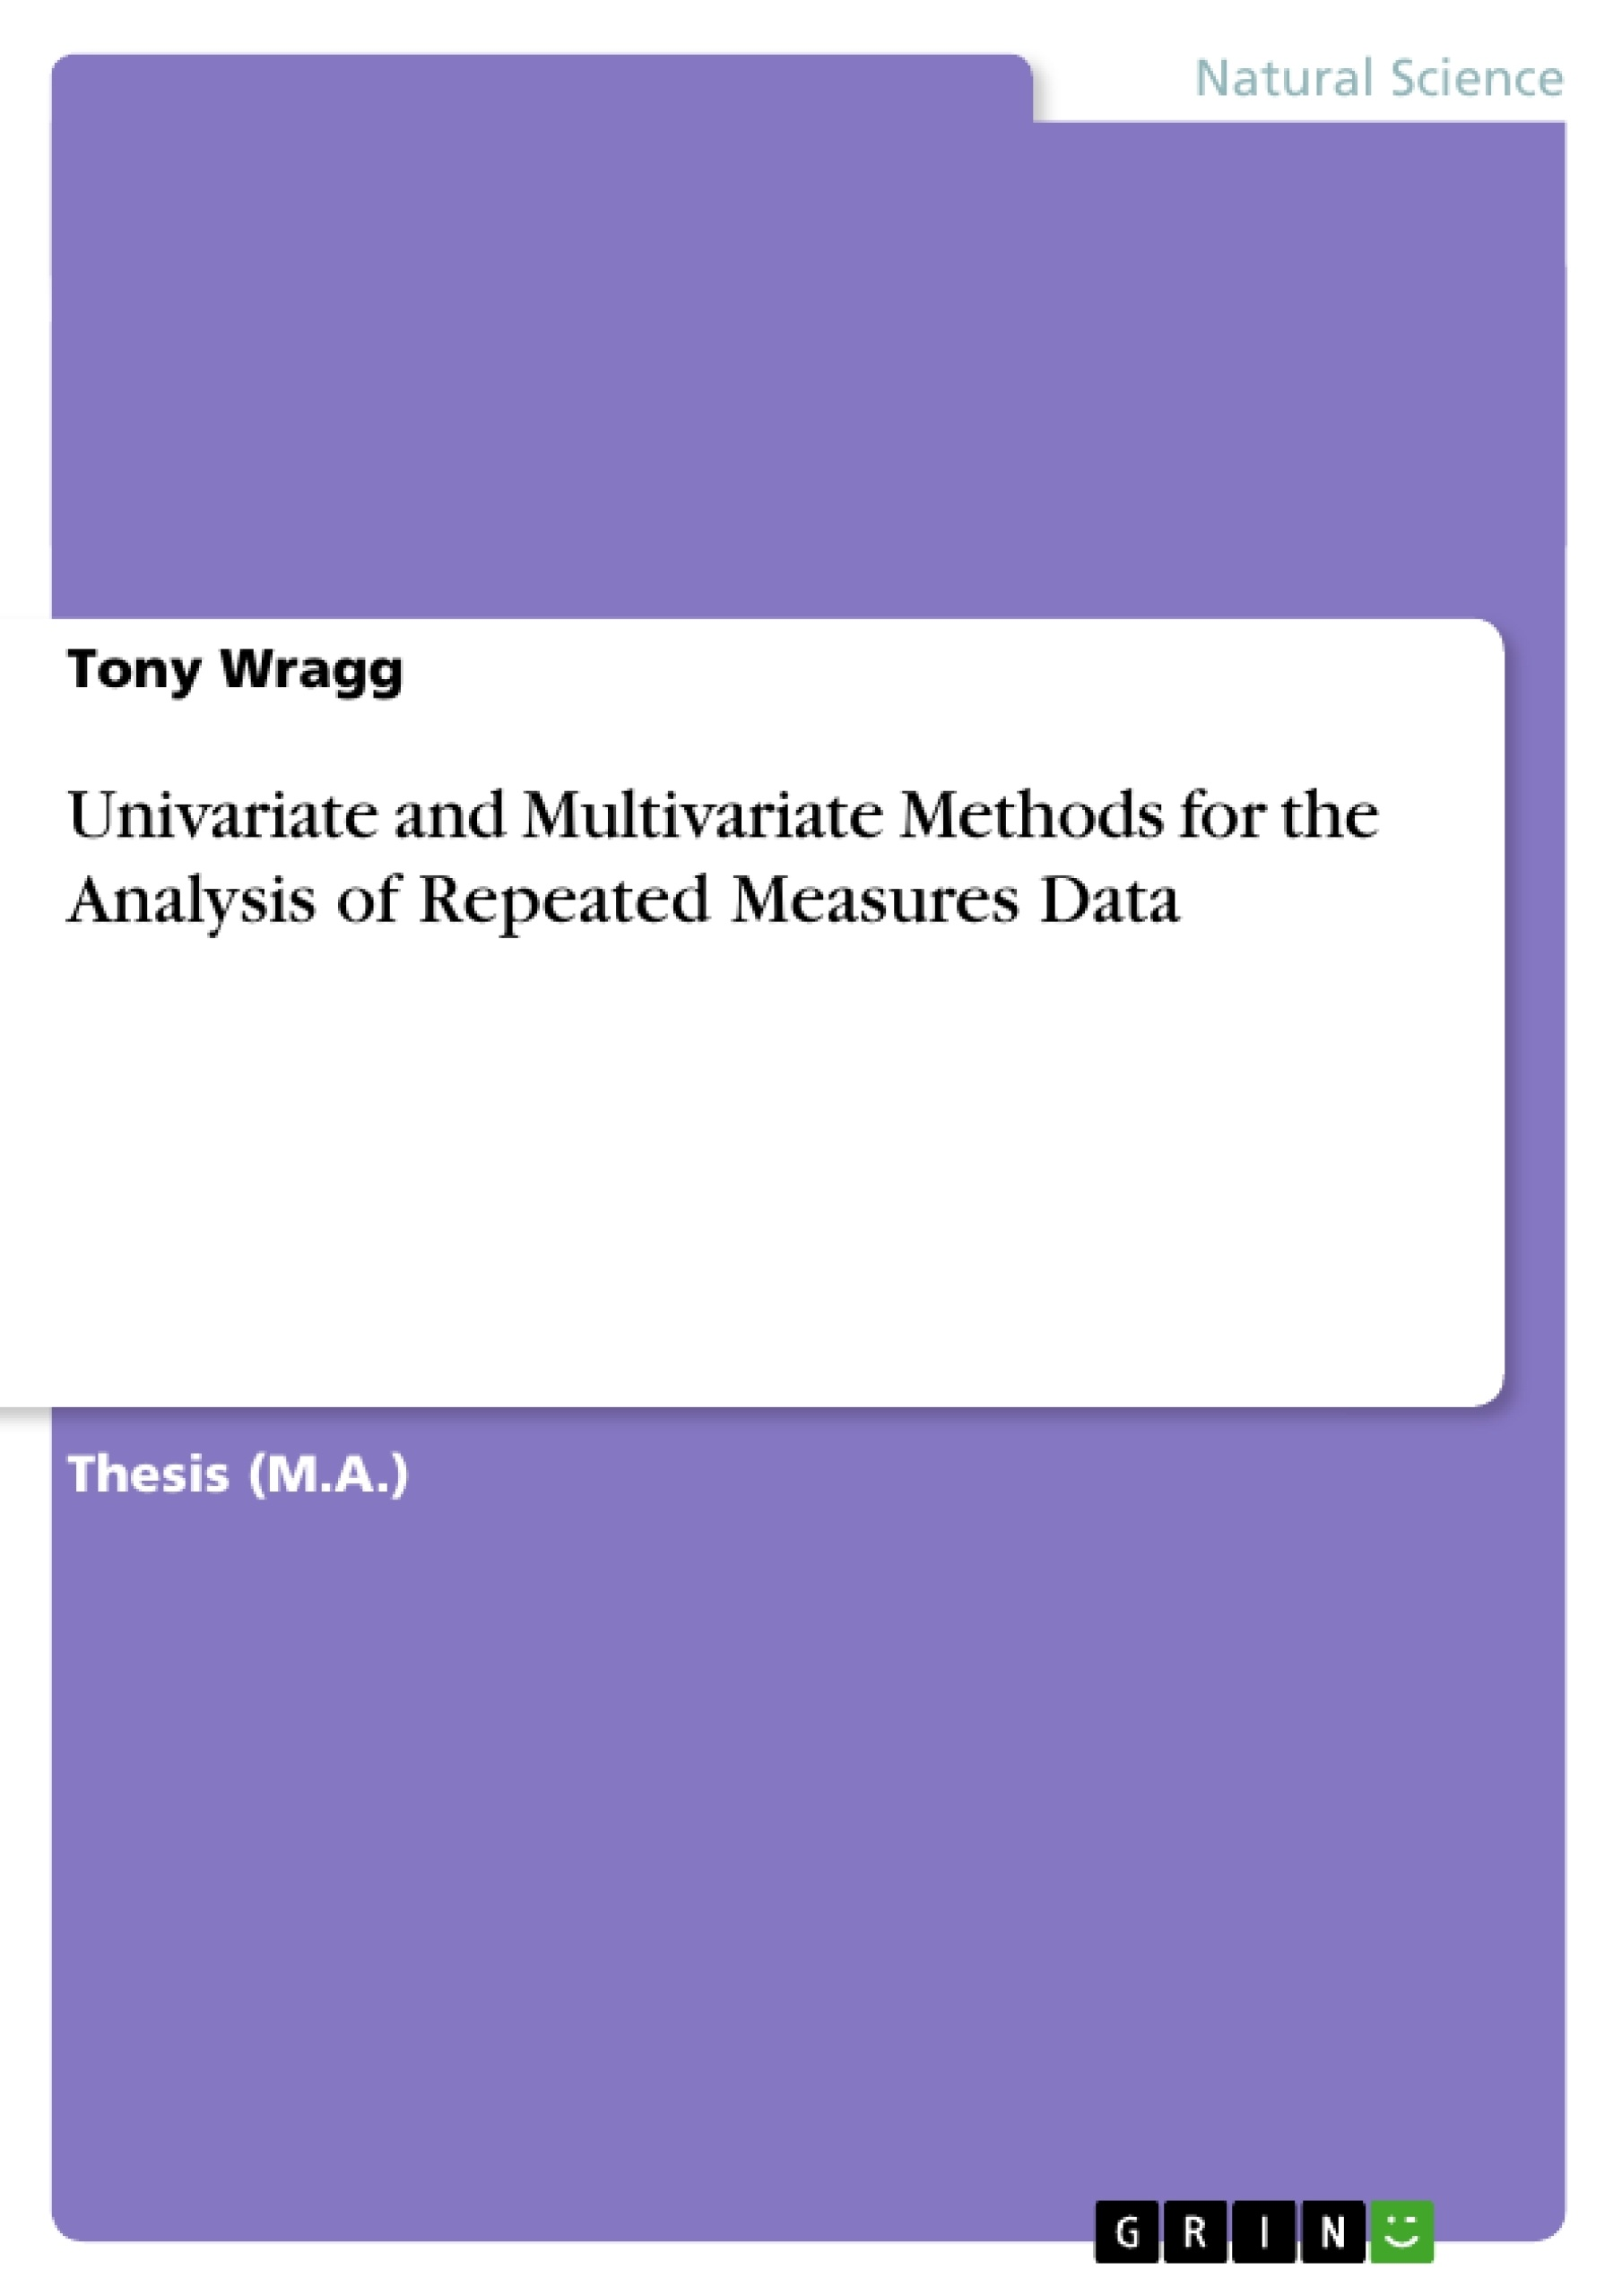 Title: Univariate and Multivariate Methods for the Analysis of Repeated Measures Data